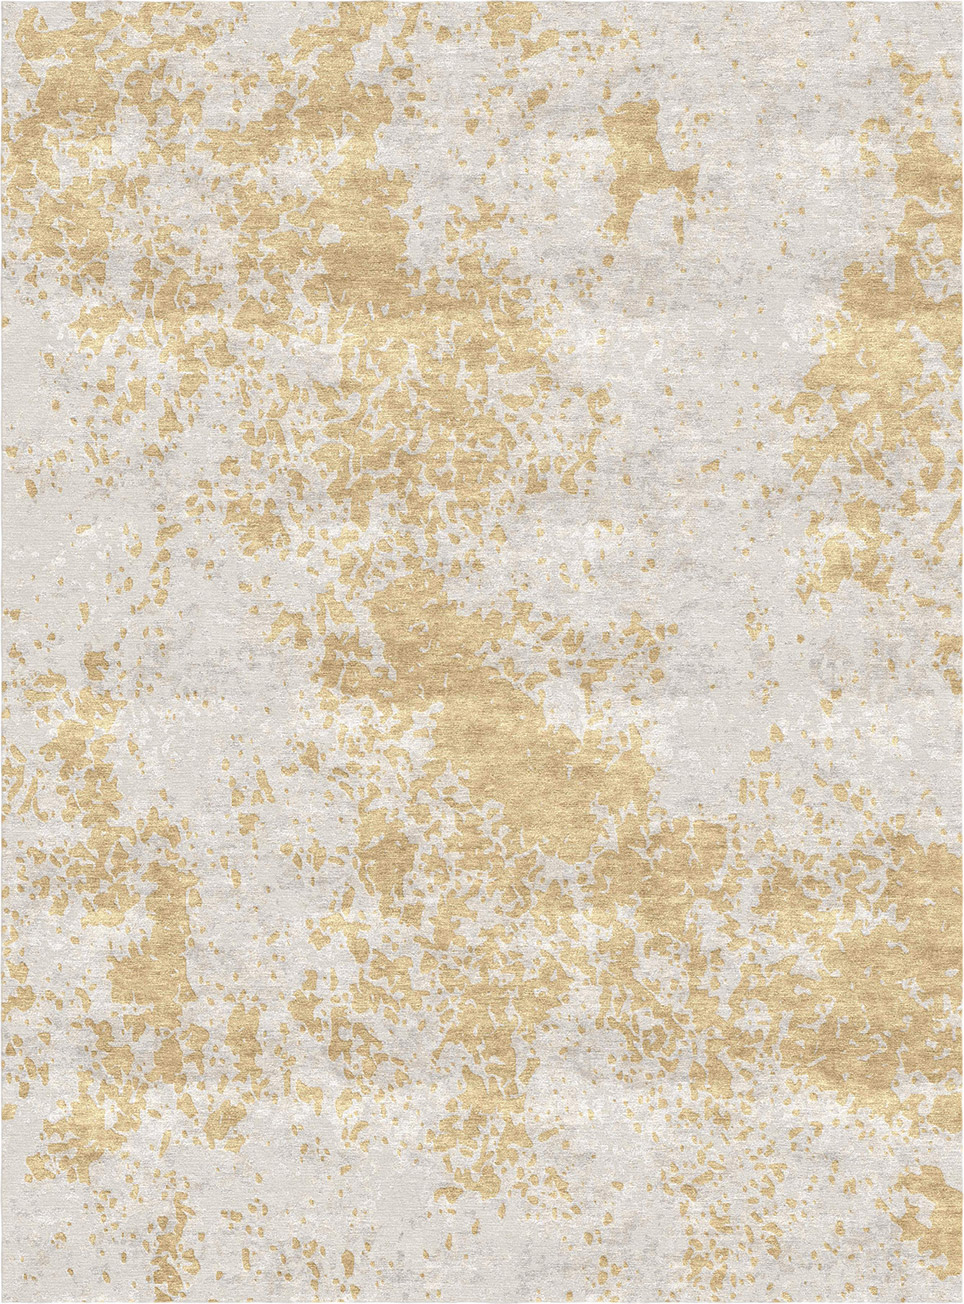 Casasensi_luxury-rug-collections_ore_gold